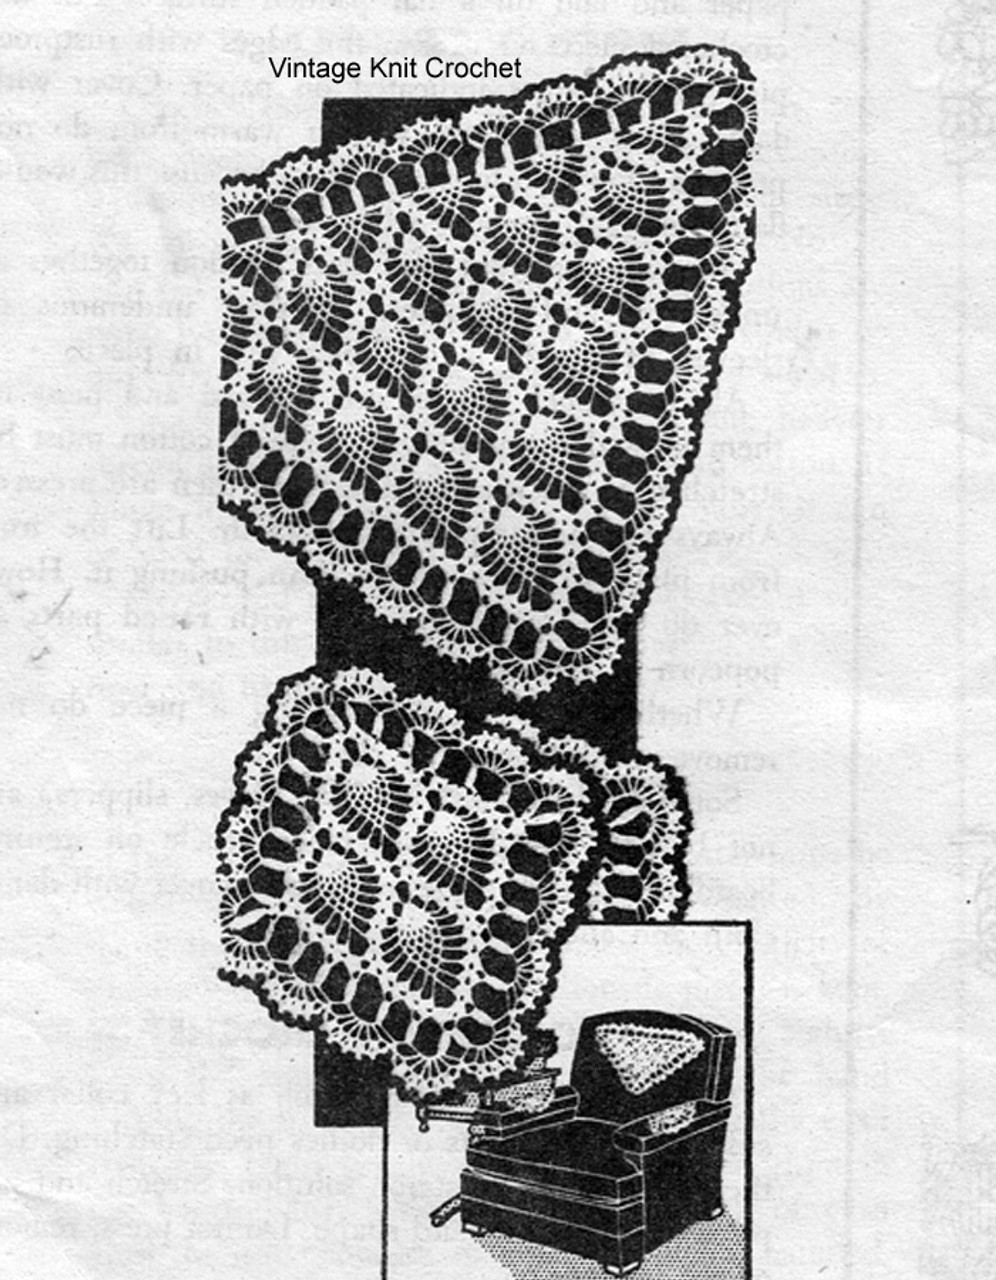 Triangle Shaped Crochet Chair Doily Pattern, Laura wheeler 937